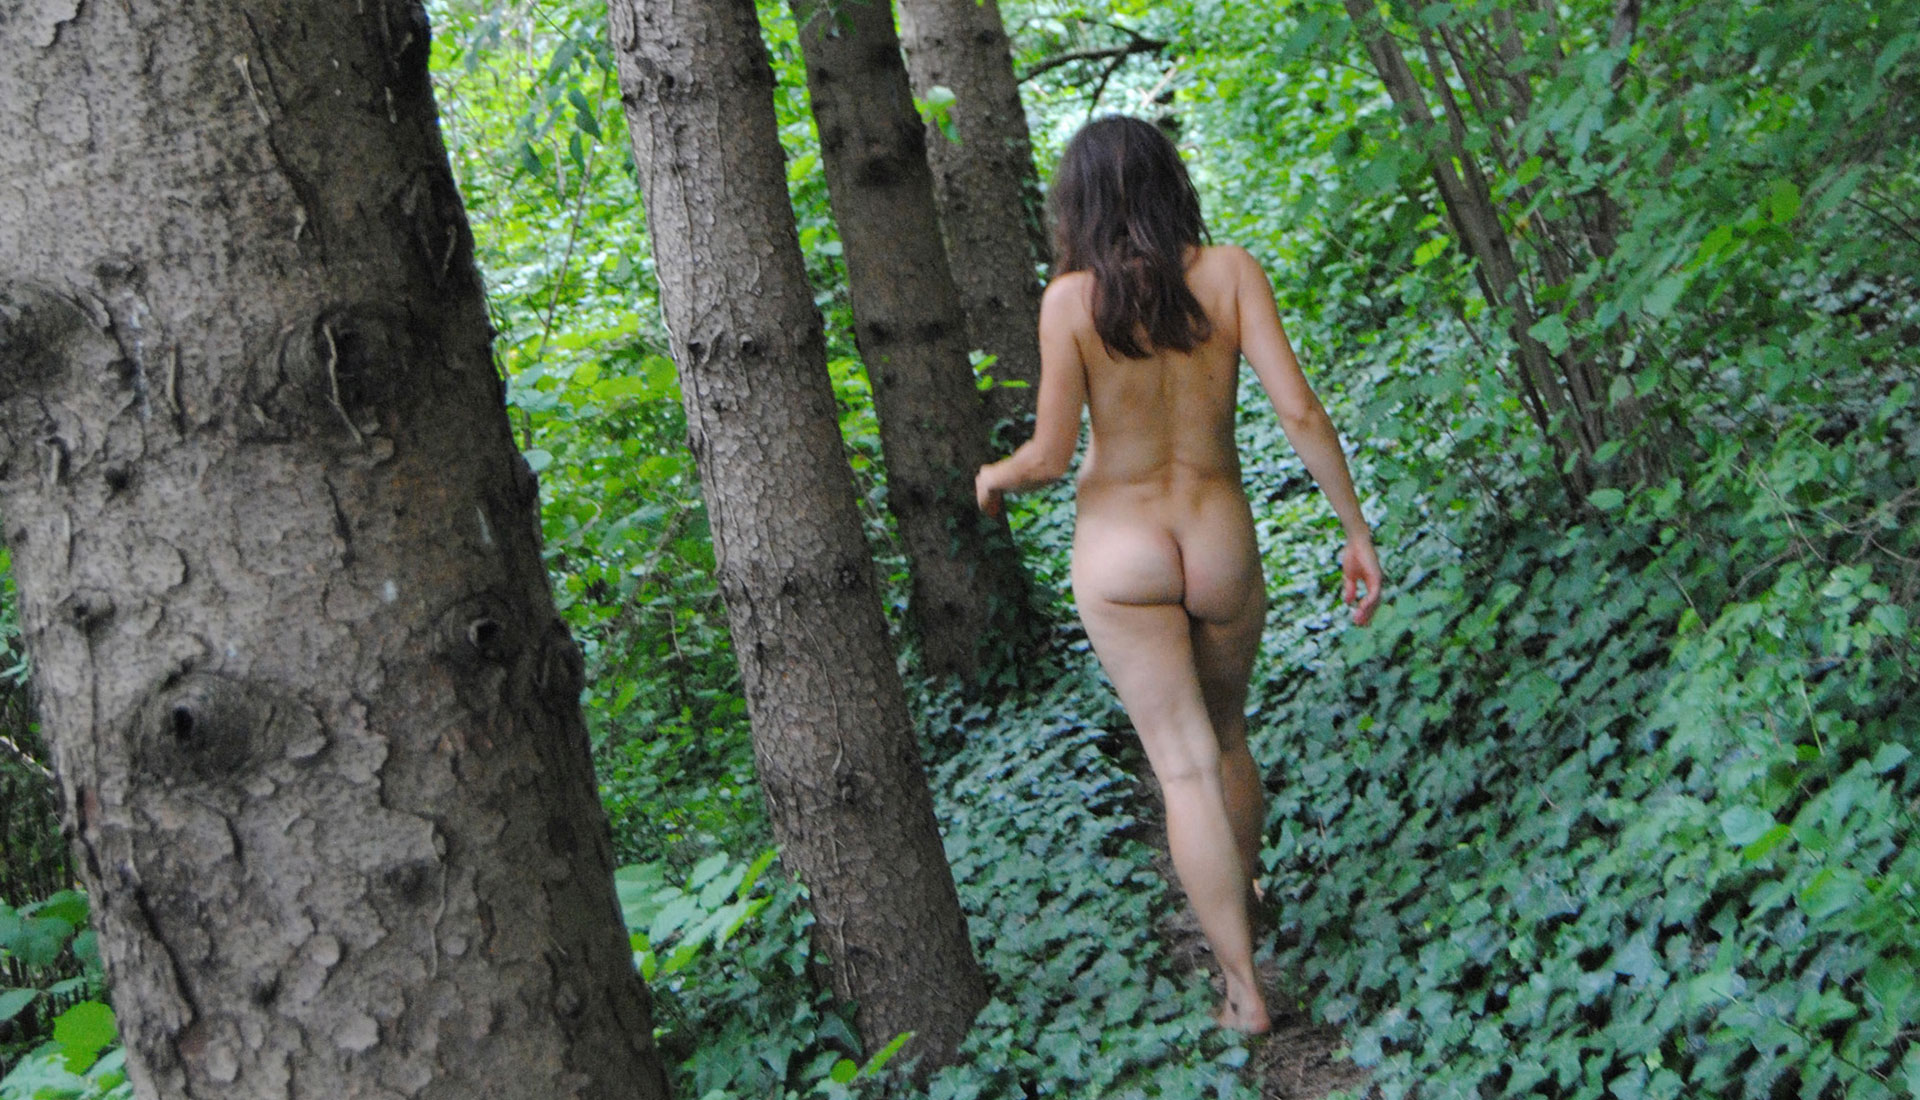 Trek in the centuries-old forest … in total freedom